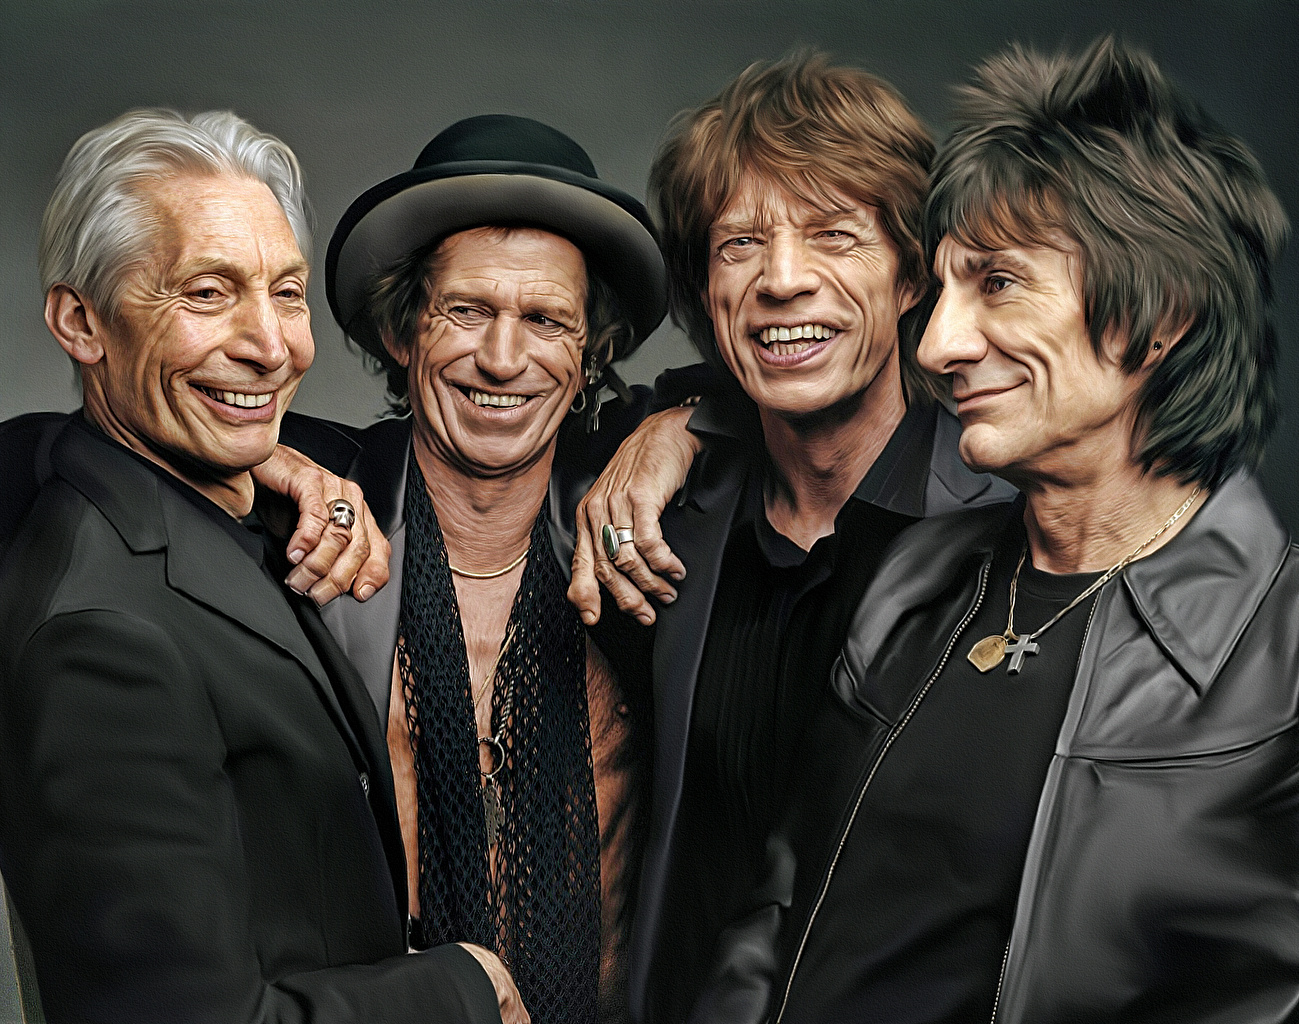 Wallpaper Men Smile Rolling Stones Mick Jagger Keith Richards 1299x1024